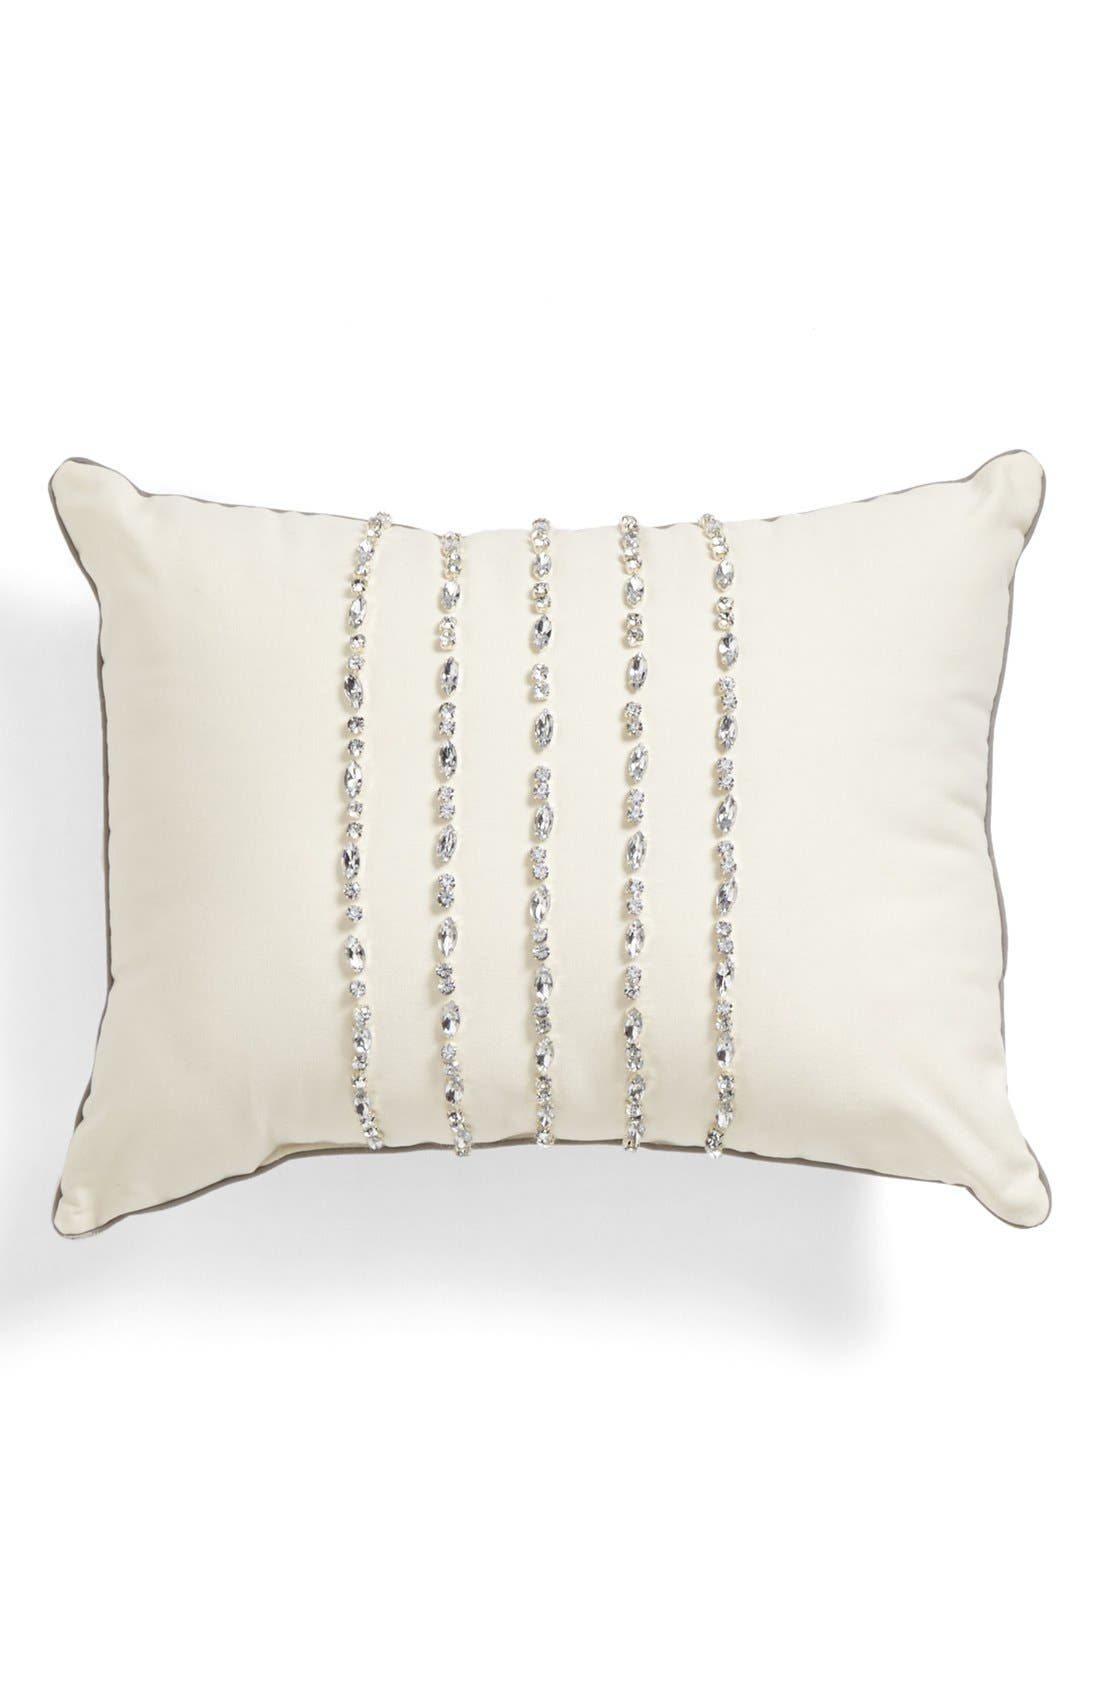 Alternate Image 1 Selected - Laundry by Shelli Segal 'Alexa' Pillow